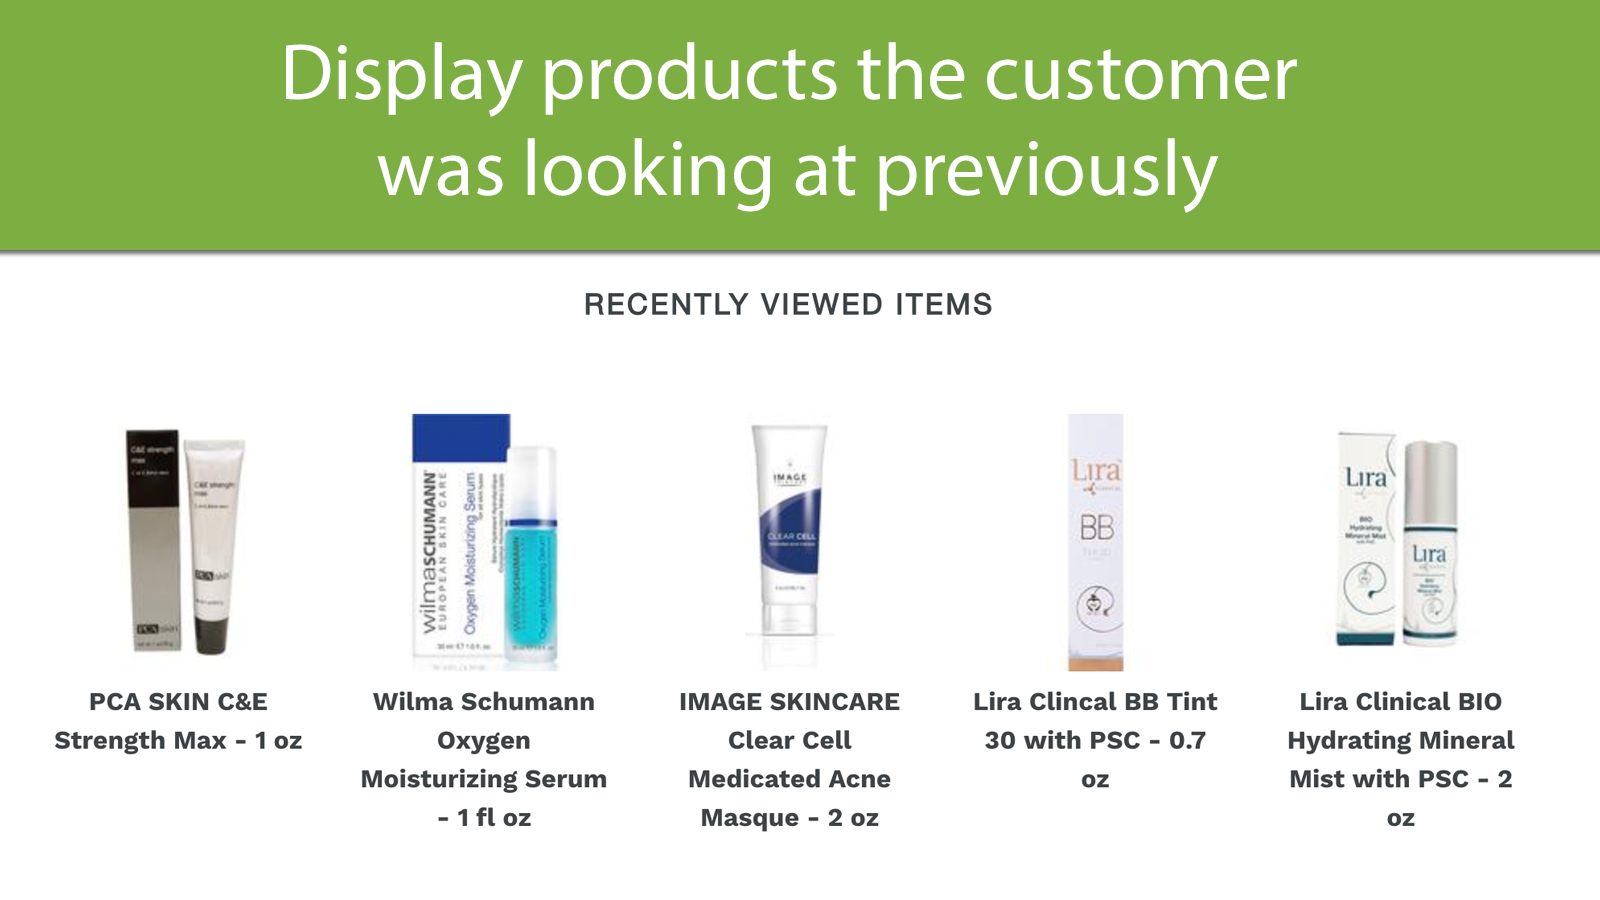 Display products the customer was looking at previously